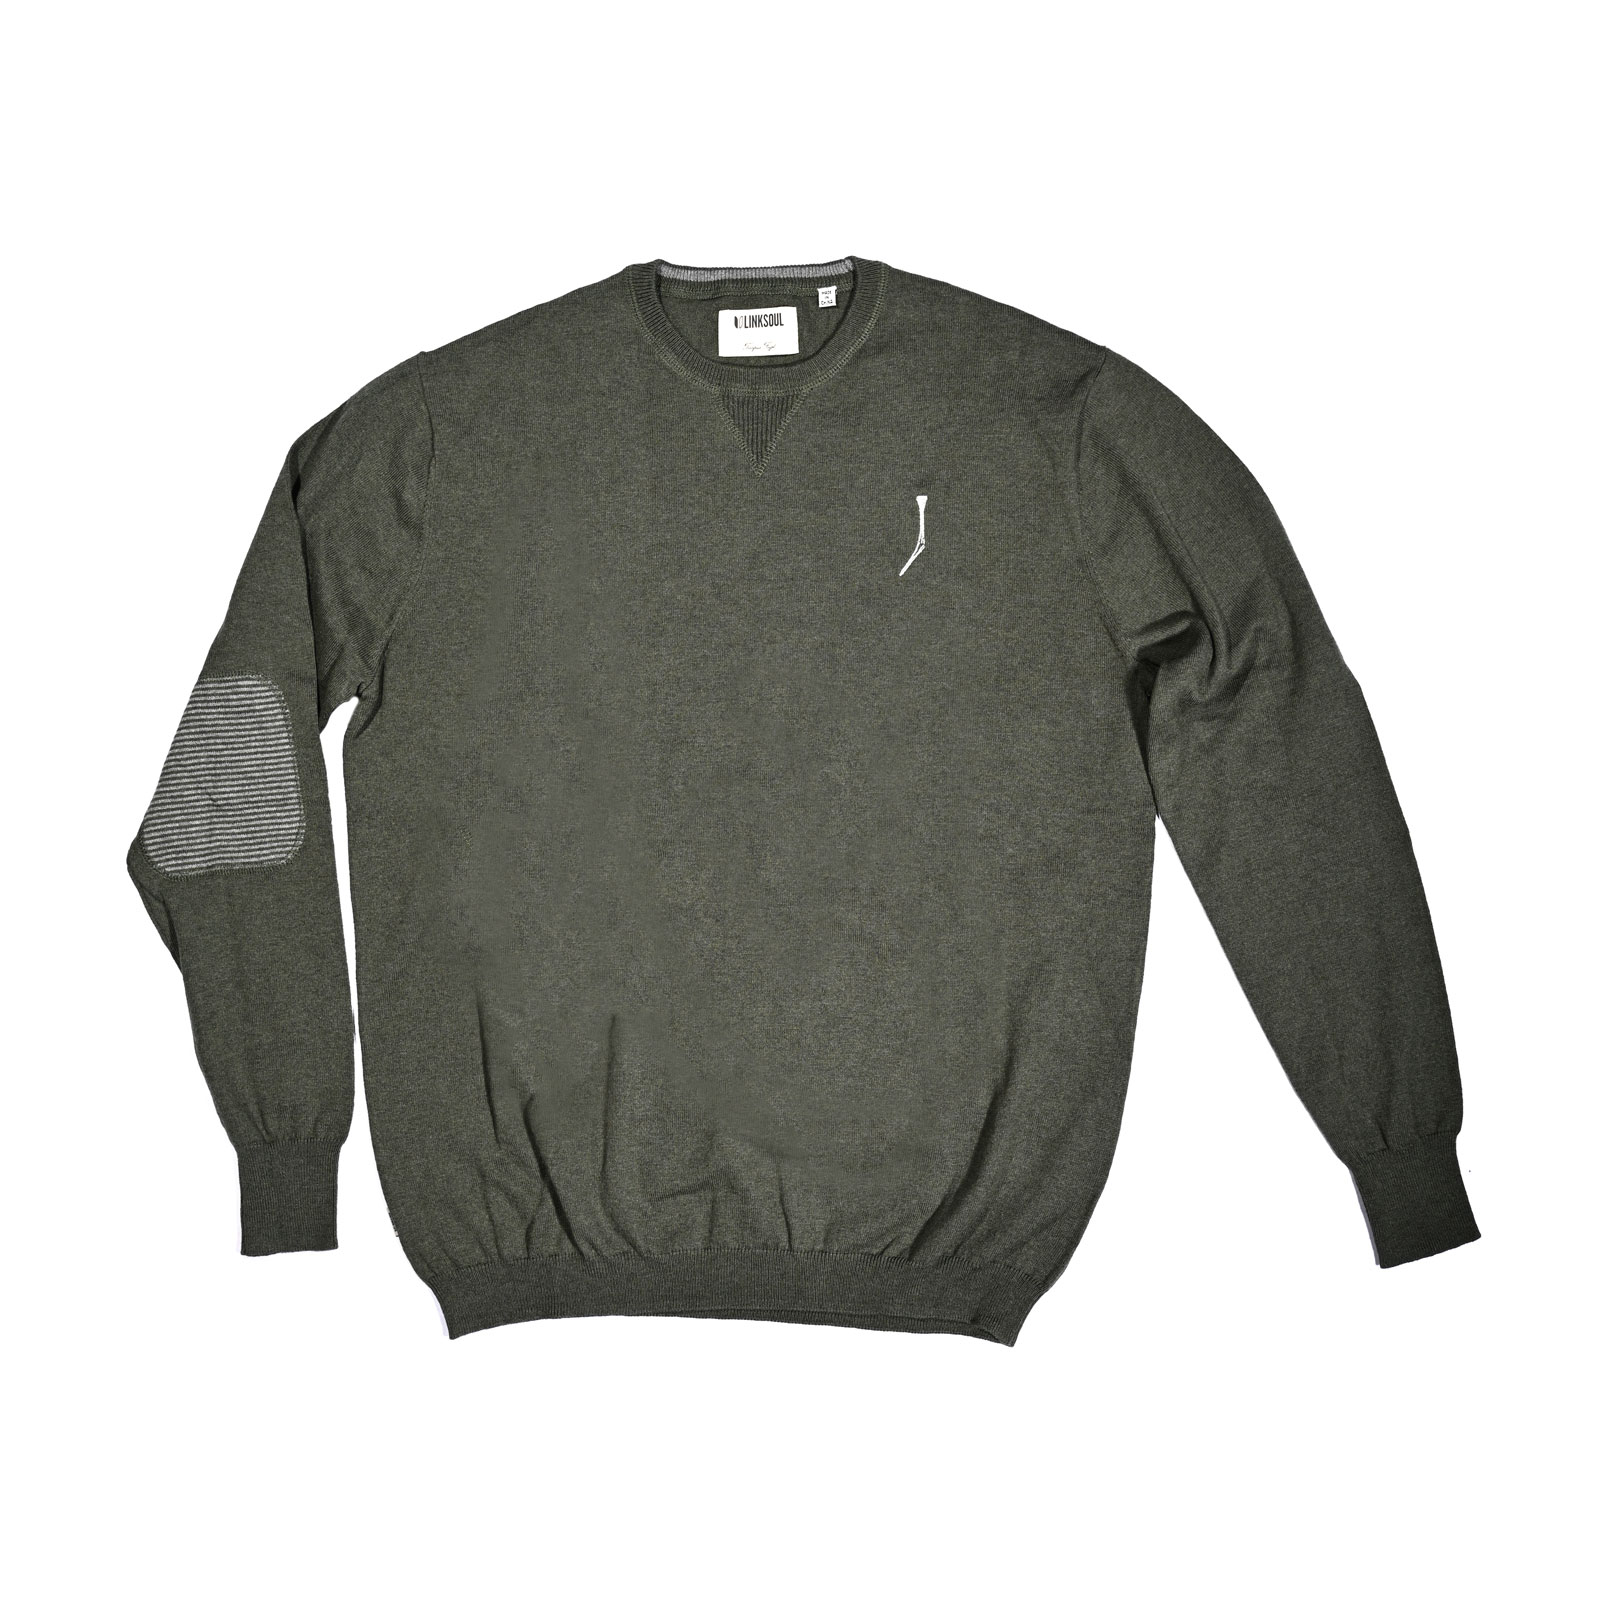 TGJ Sweater - Lodin